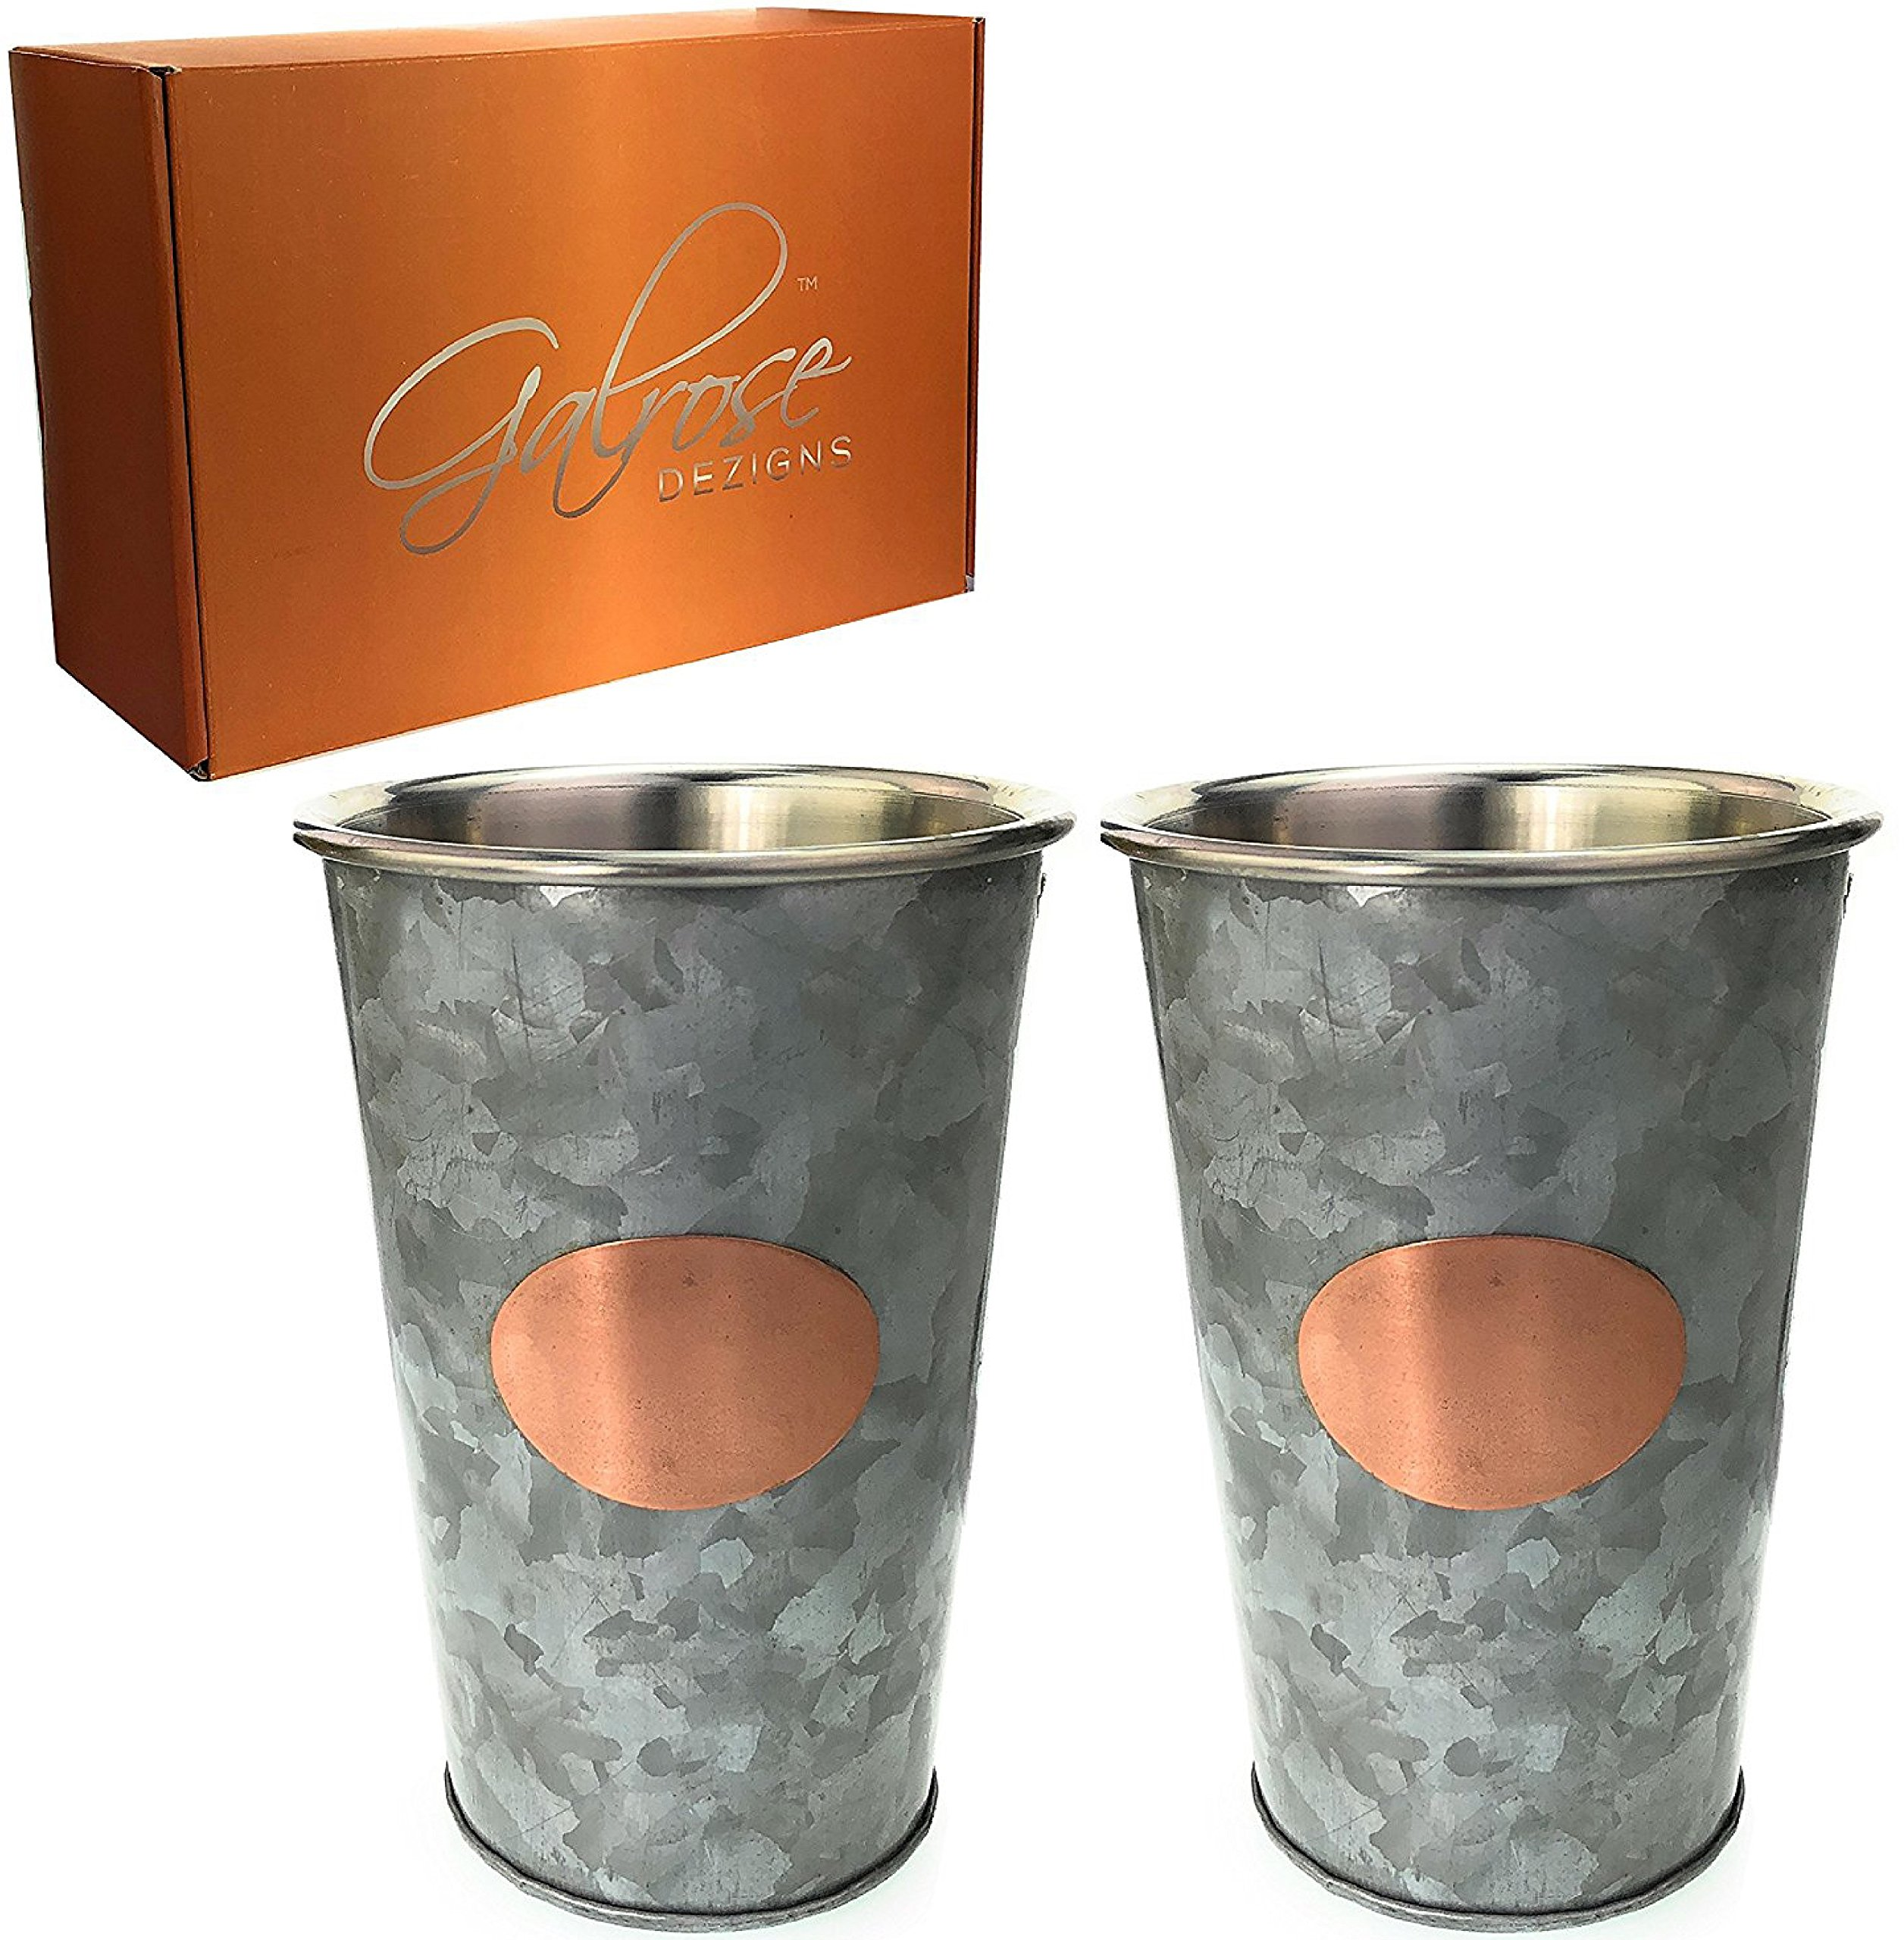 Galrose DRINKING GLASSES - Stylish Galvanized Iron Cup/Mug Stainless Steel Lined Double Wall with Rose Gold Plaque Moscow Mule Mint Julep Alternative Unique Industrial Chic look Great Gift Idea